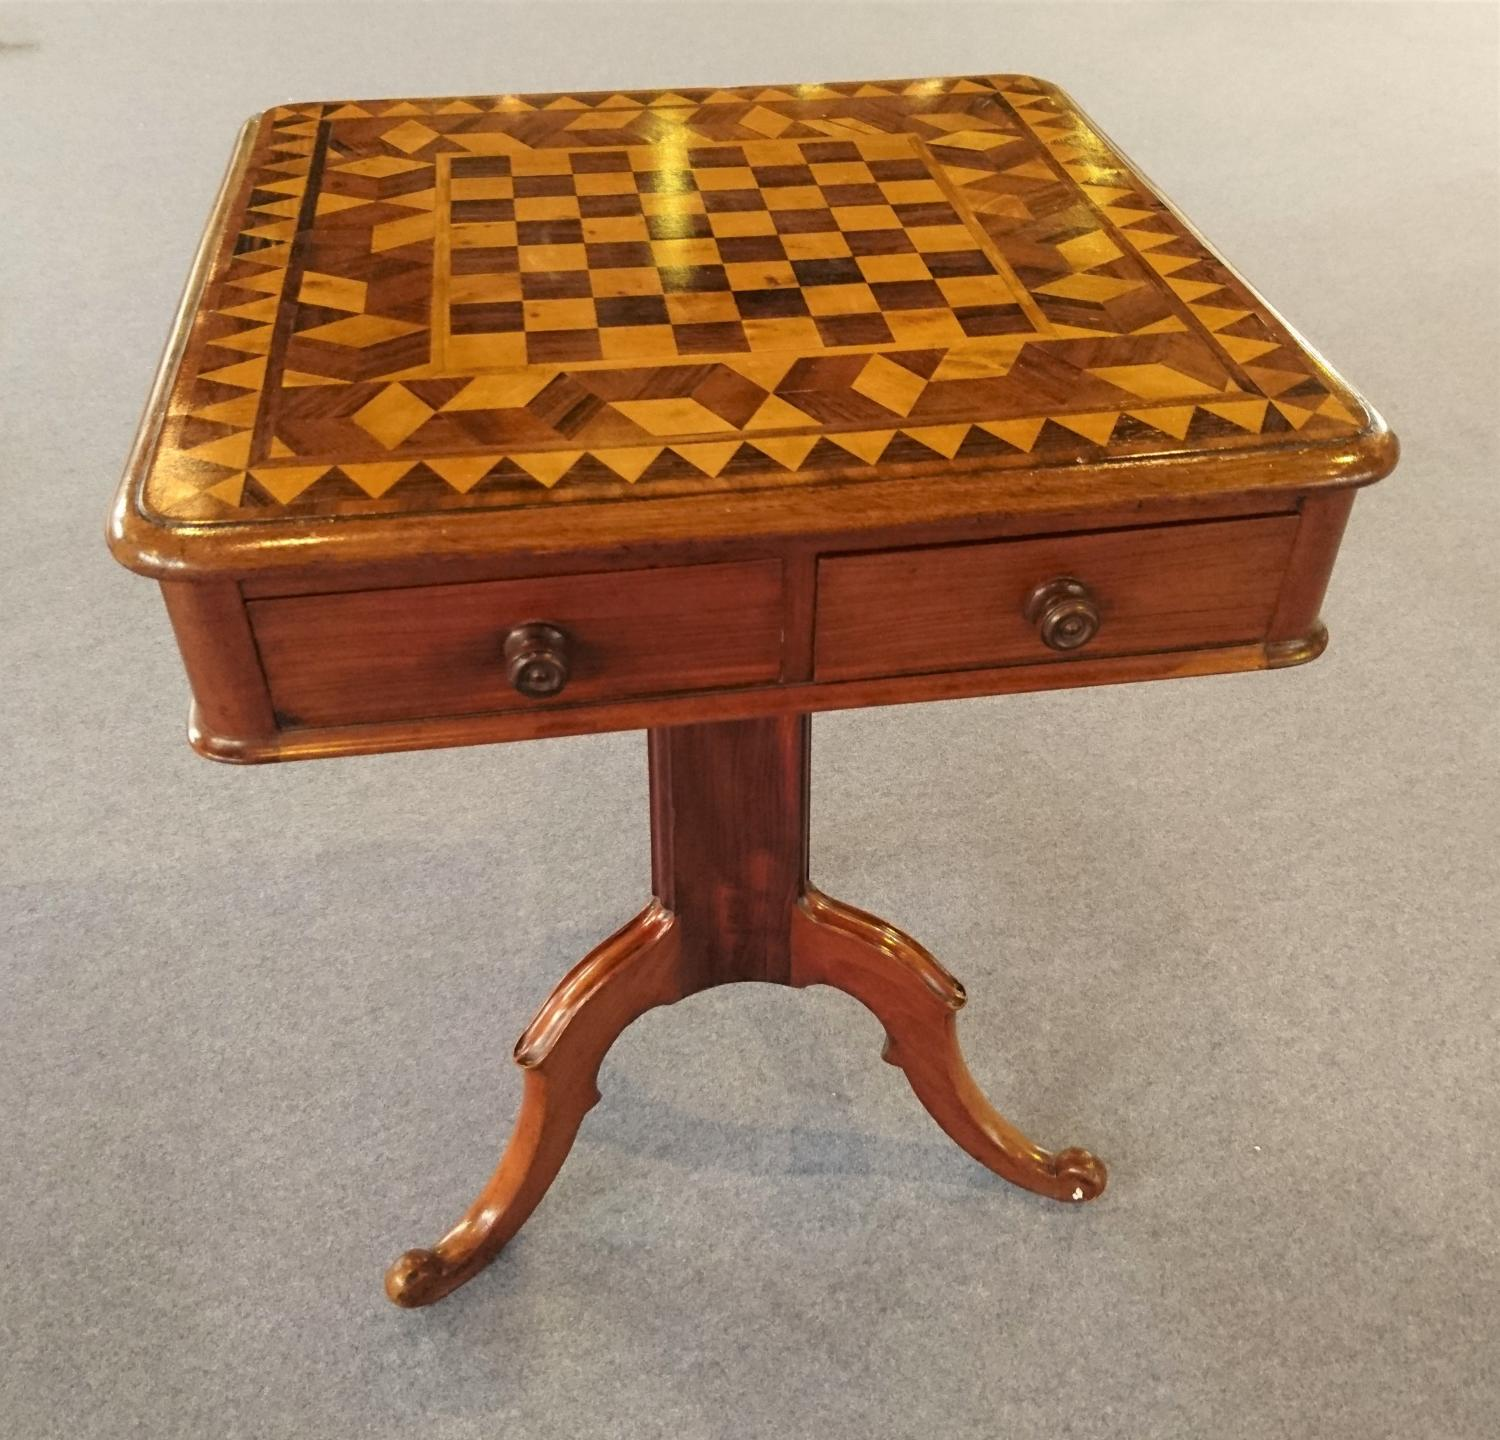 Victorian games chess table